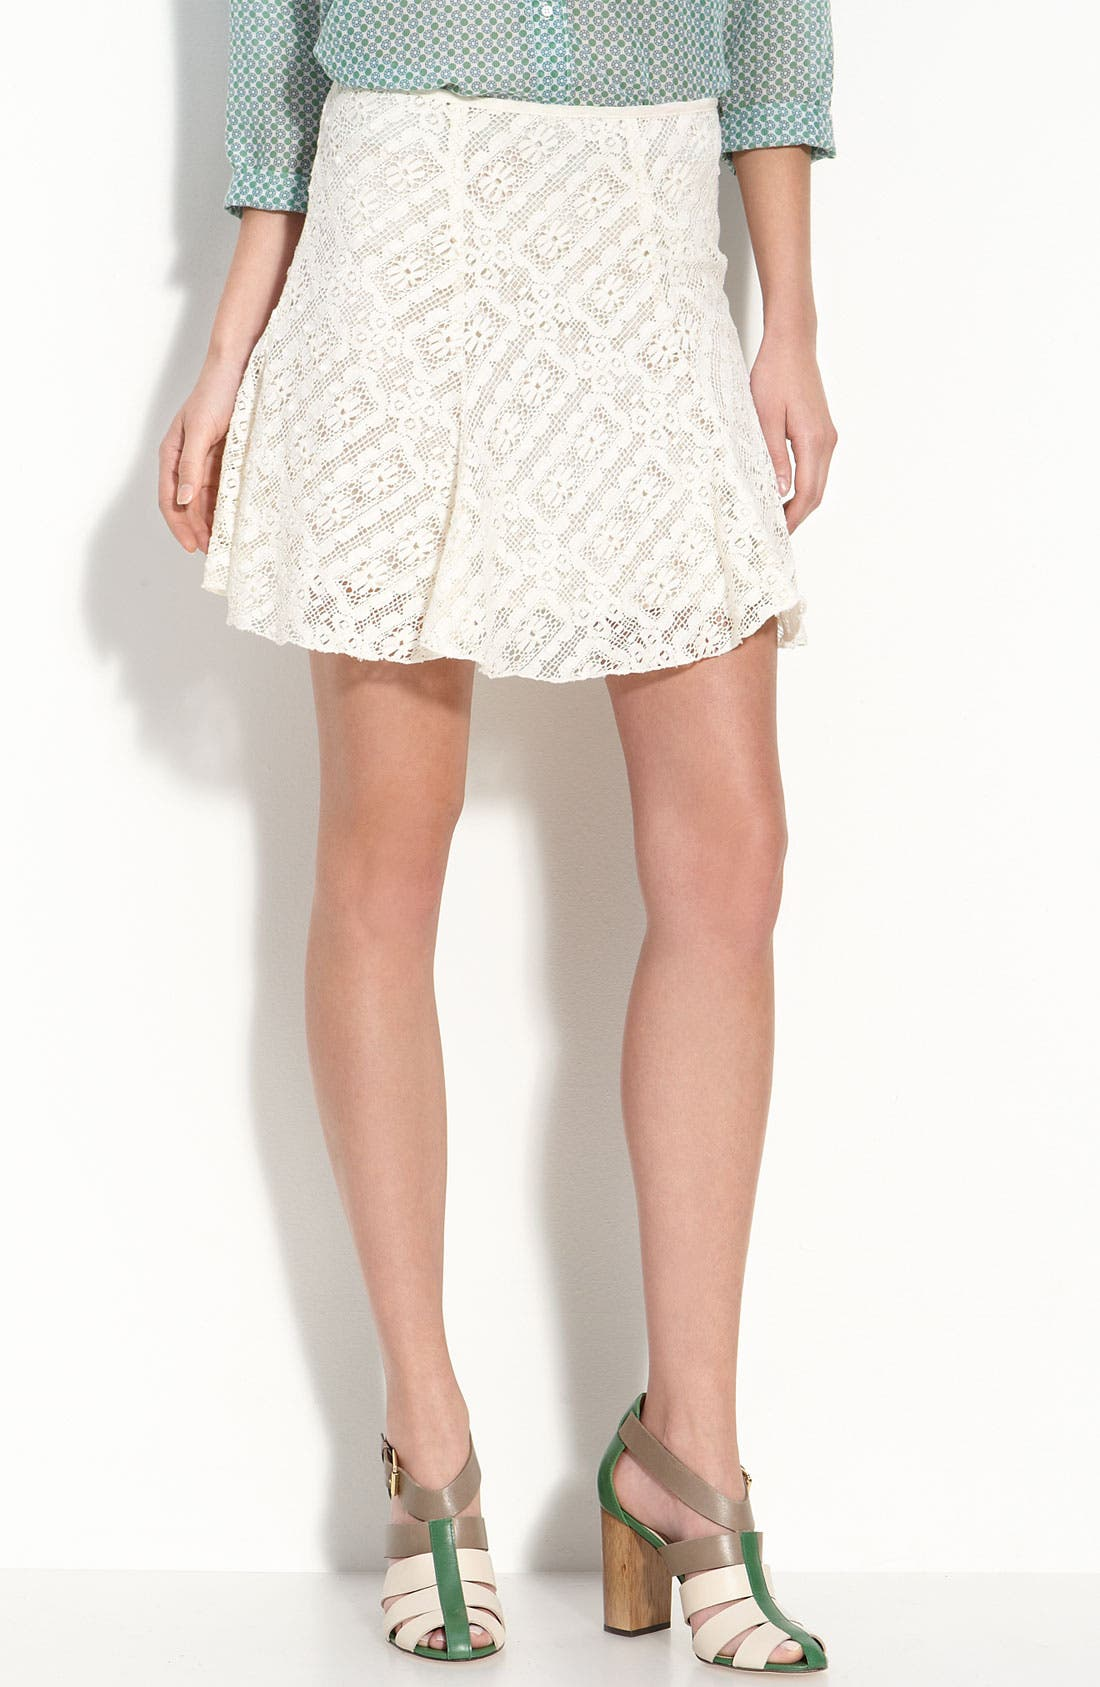 Main Image - TEXTILE Elizabeth and James 'Darcy' Garden Lace Skirt